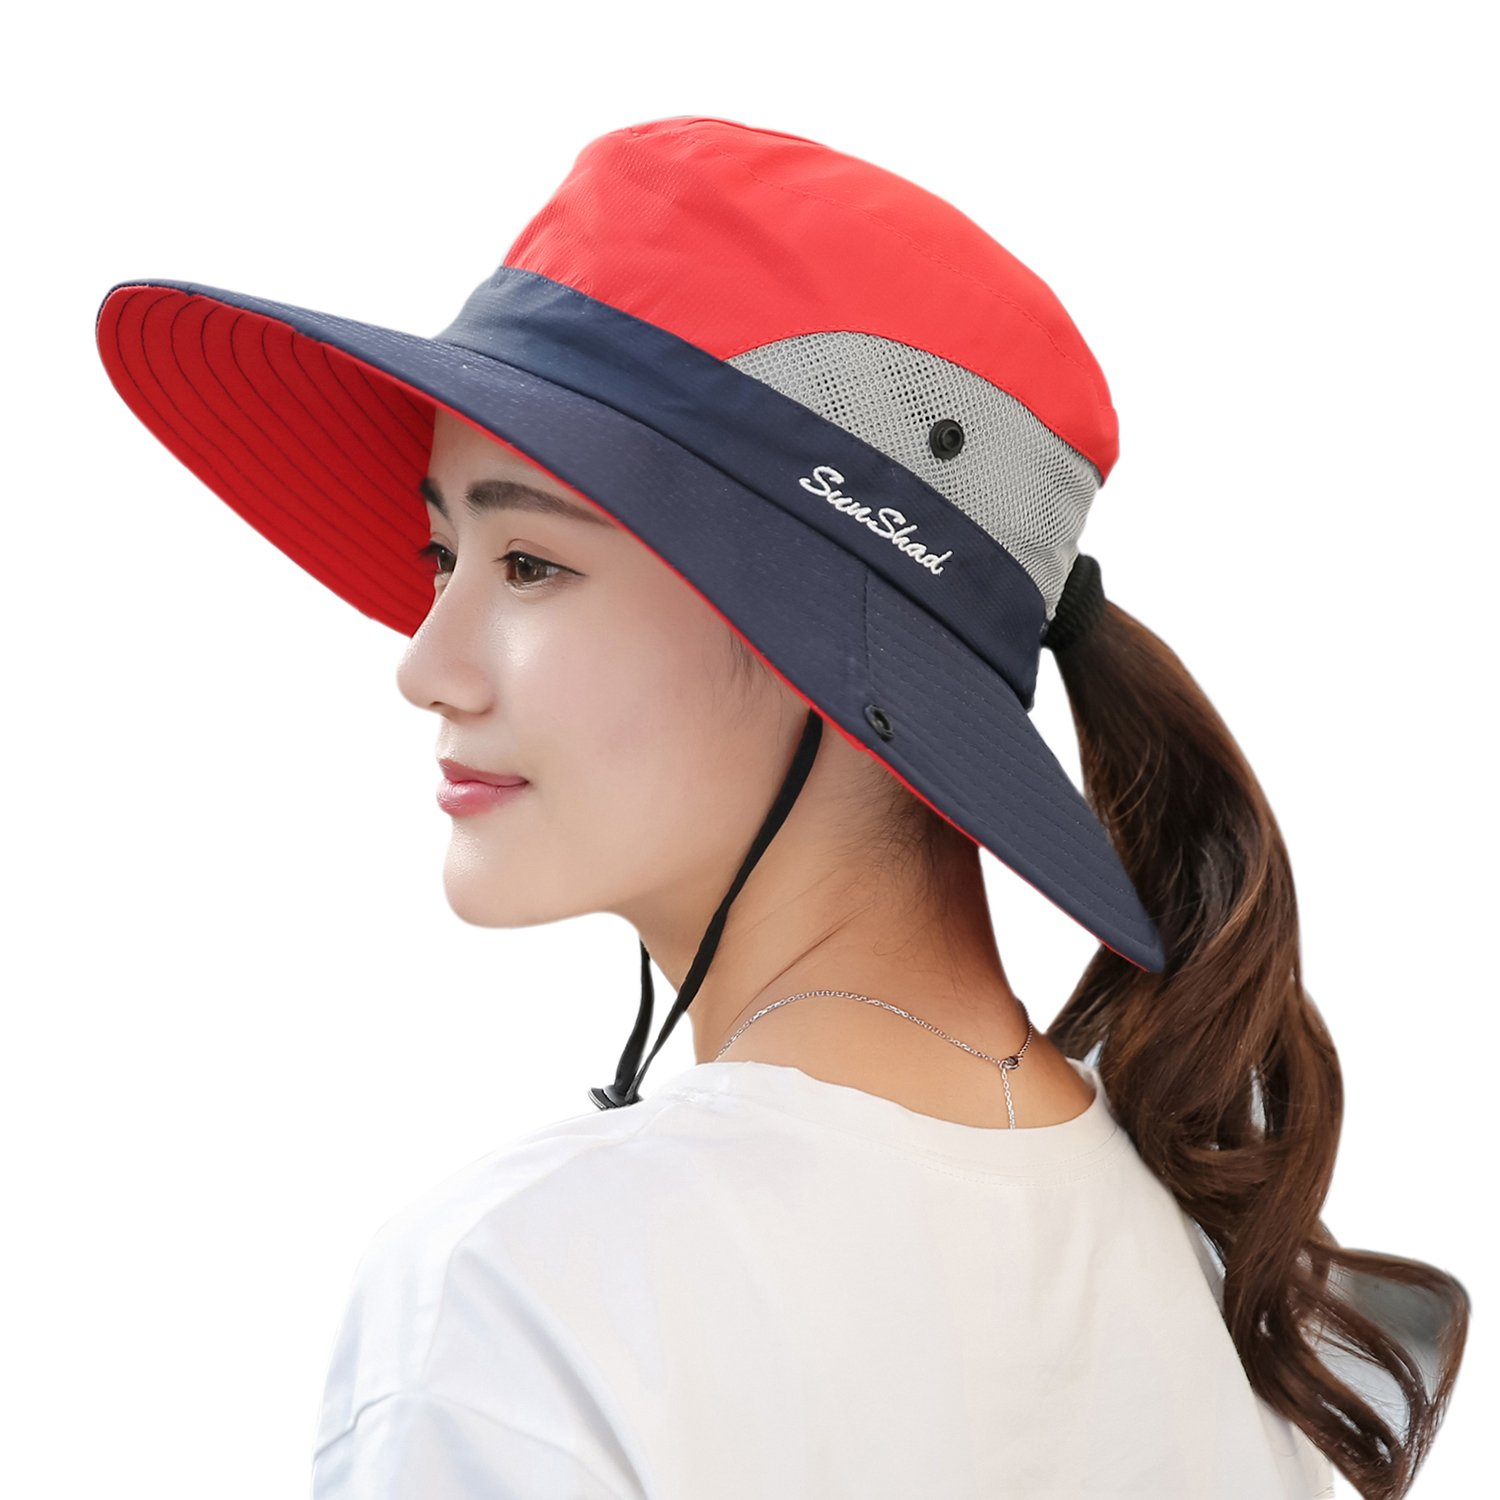 dbb2d7754cd6f Muryobao Women s Sun Hat Outdoor UV Protection Foldable Mesh Bucket Hat  Wide Brim Summer Beach Fishing Cap Red Navy